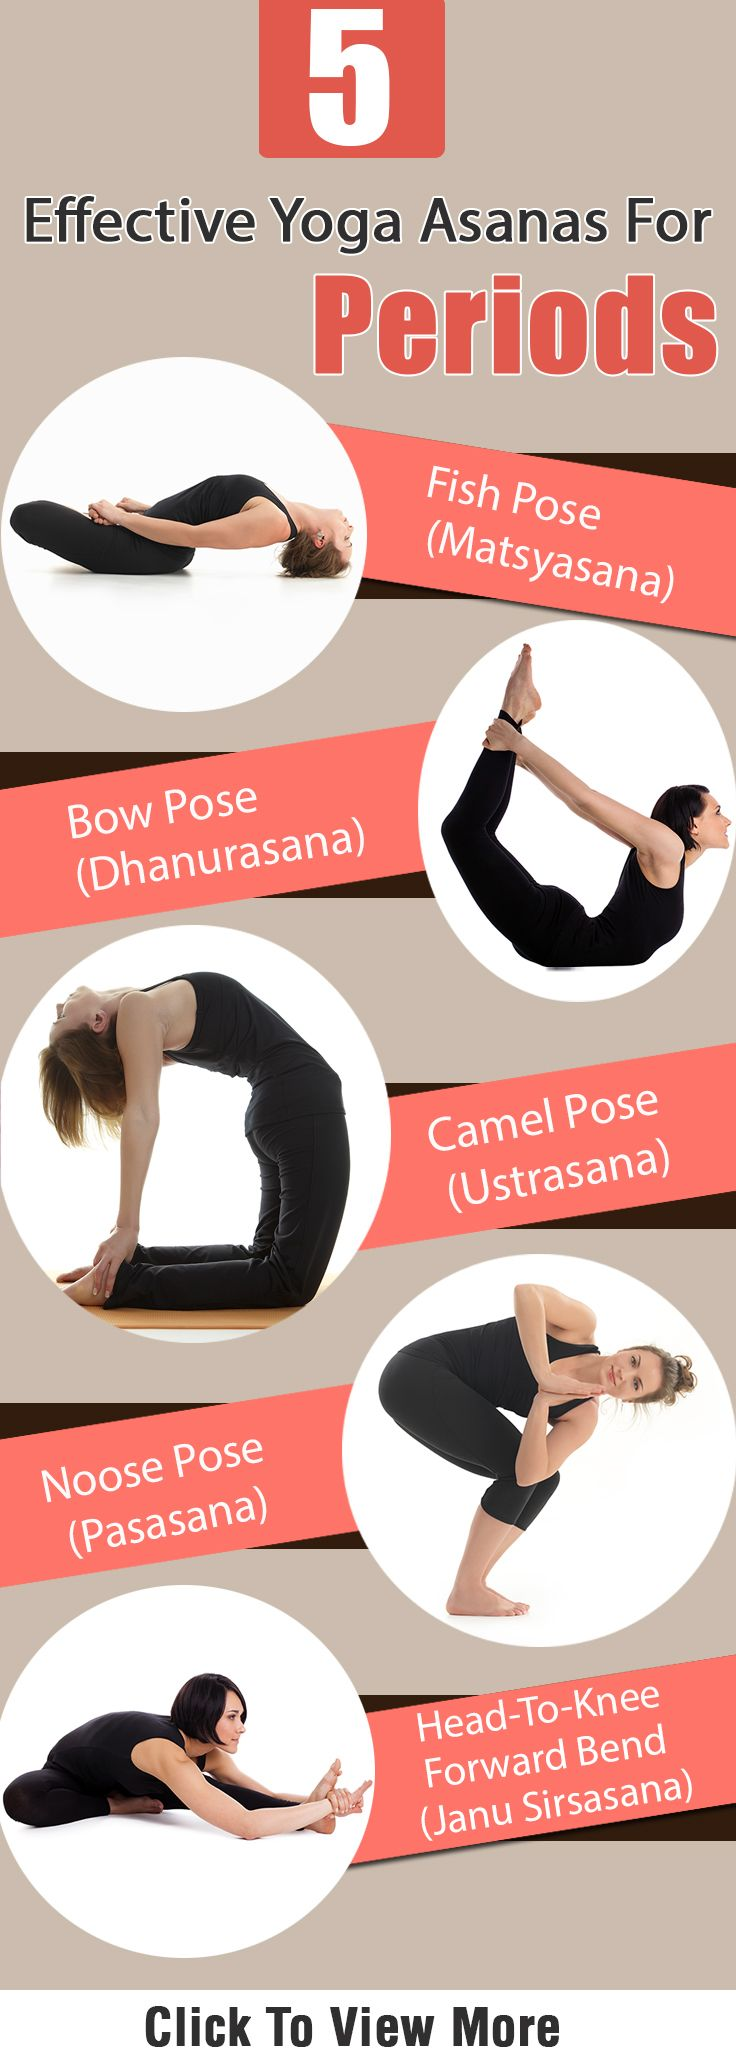 5 Effective #Yoga Asanas for Periods